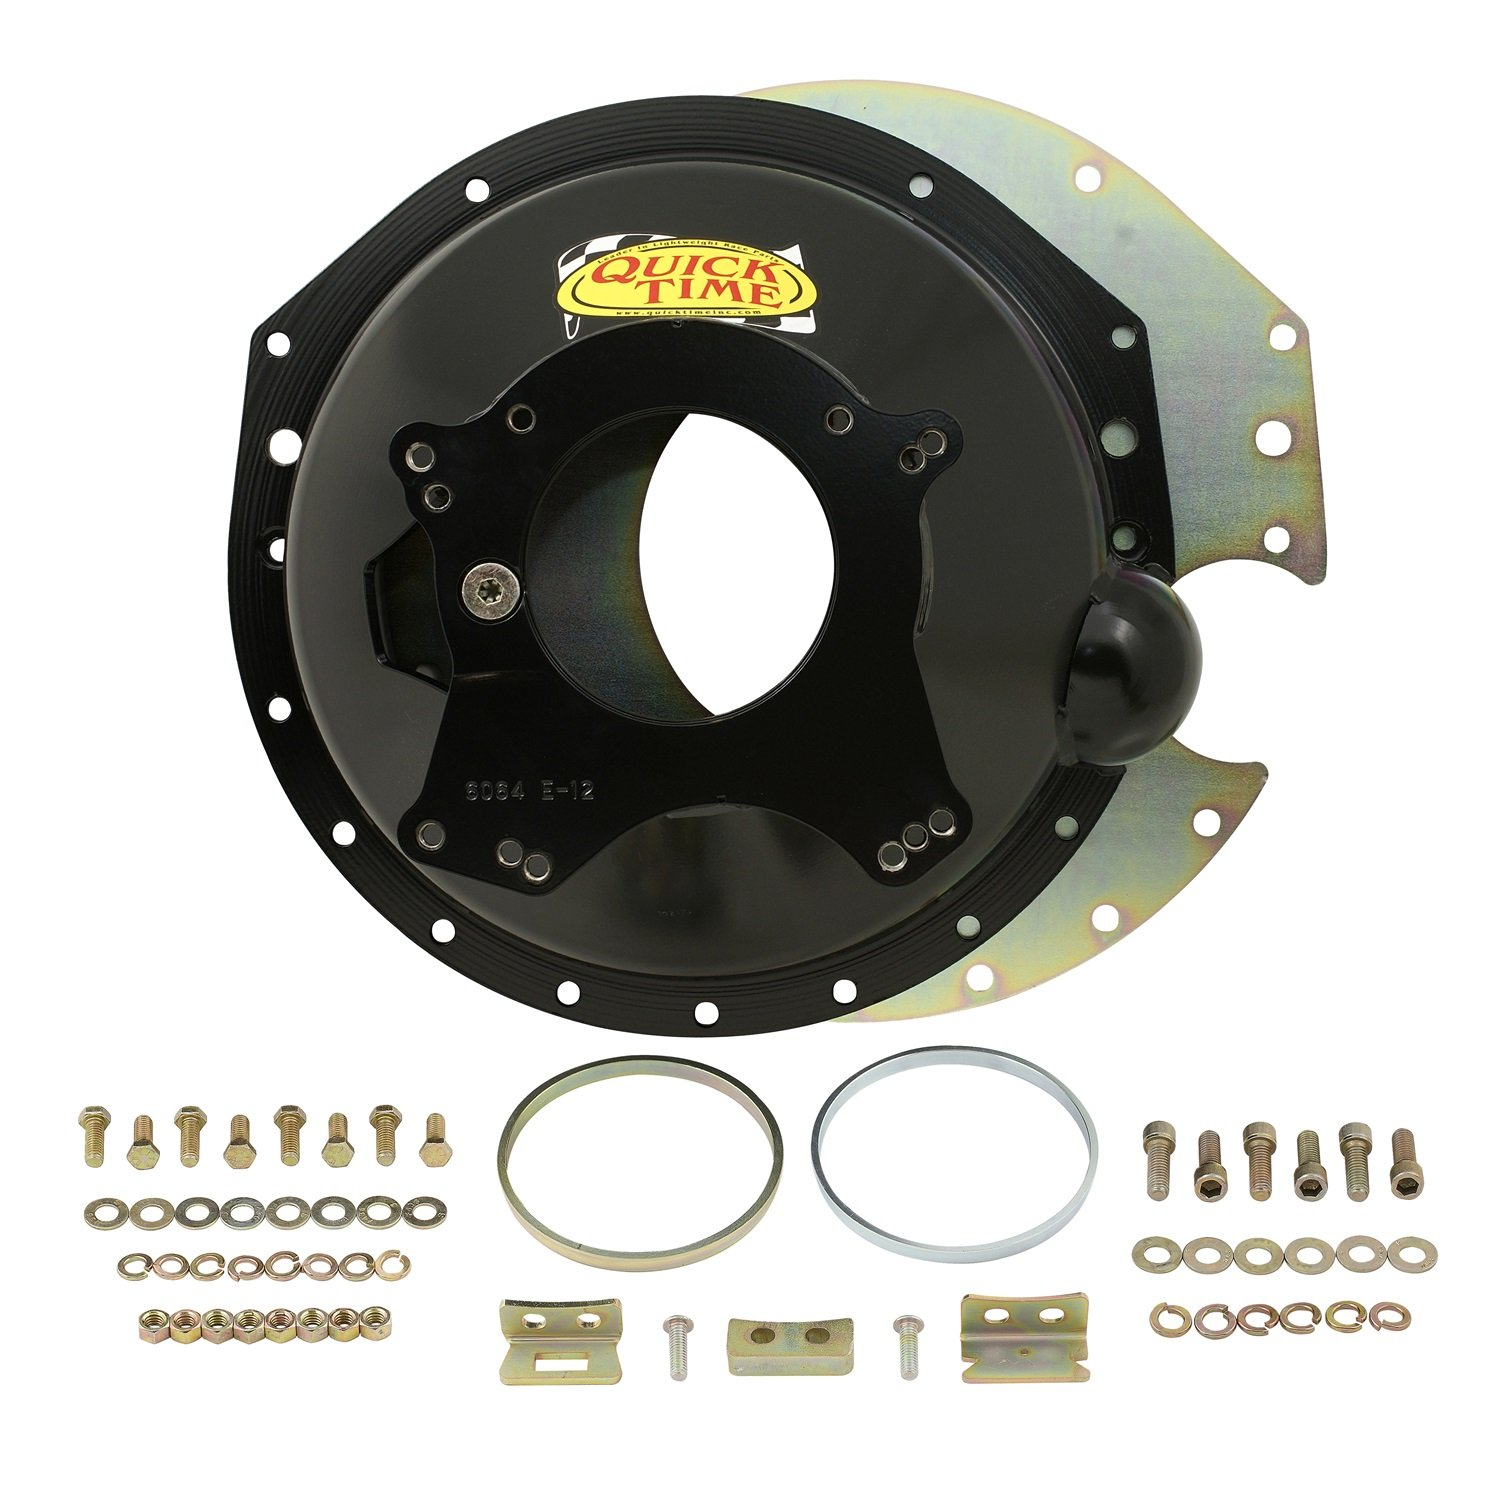 QuickTime (RM-6064) GM Small Block Engine to Tremec/T5 Transmission Bellhousing by Quick Time (Image #1)